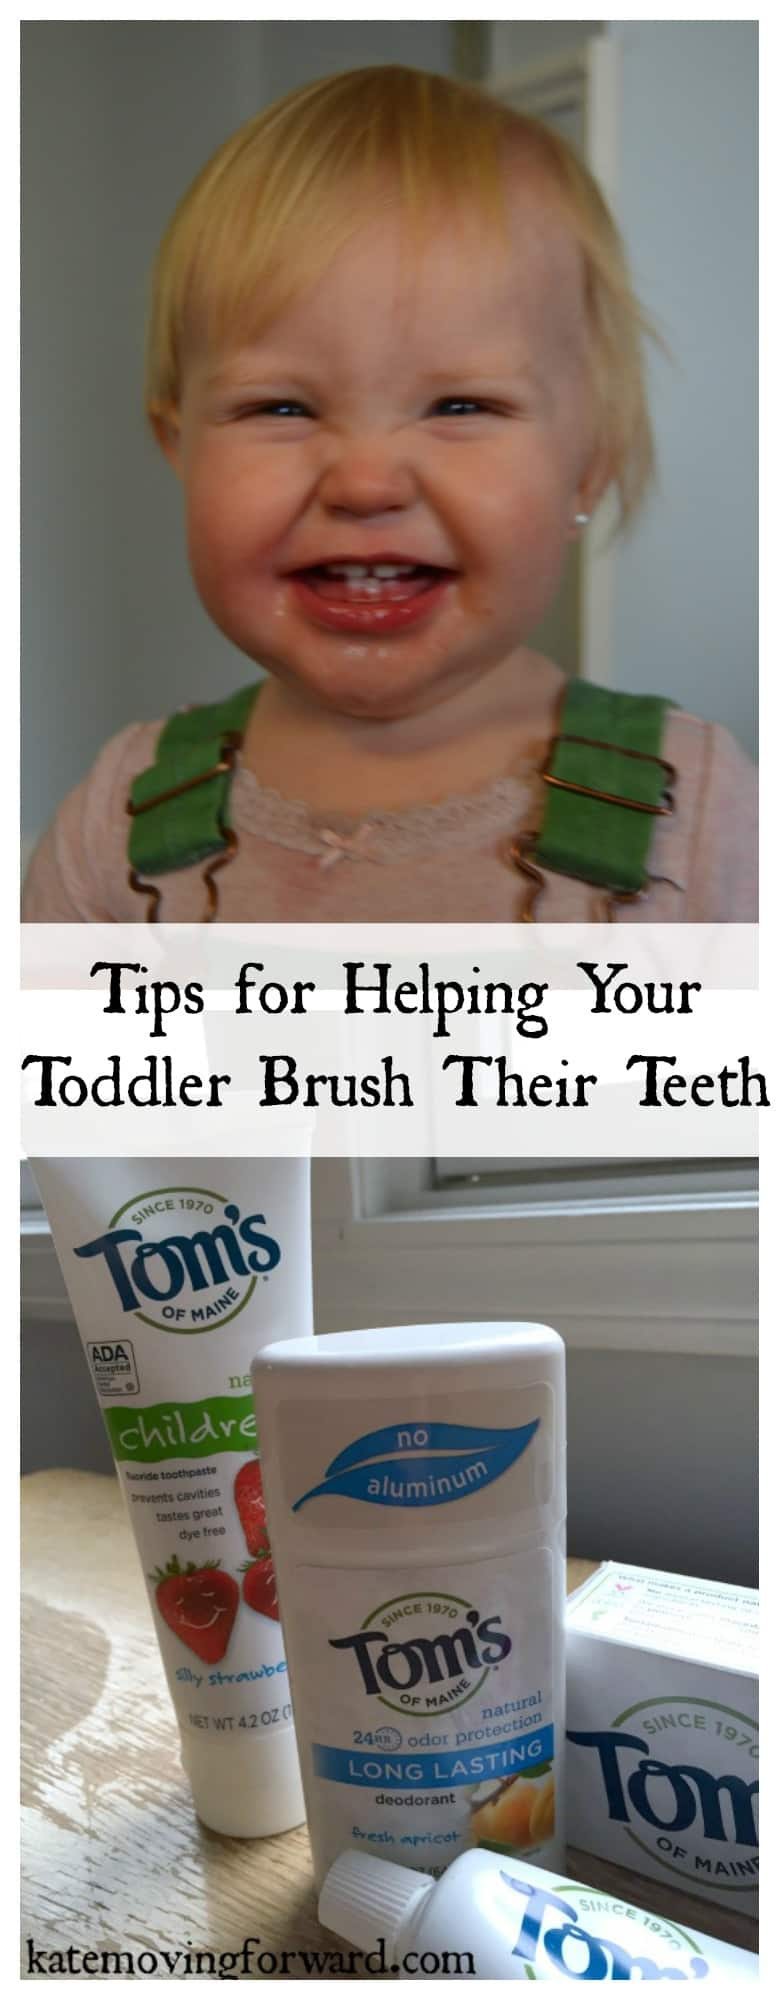 Tips for toddler teeth brushing